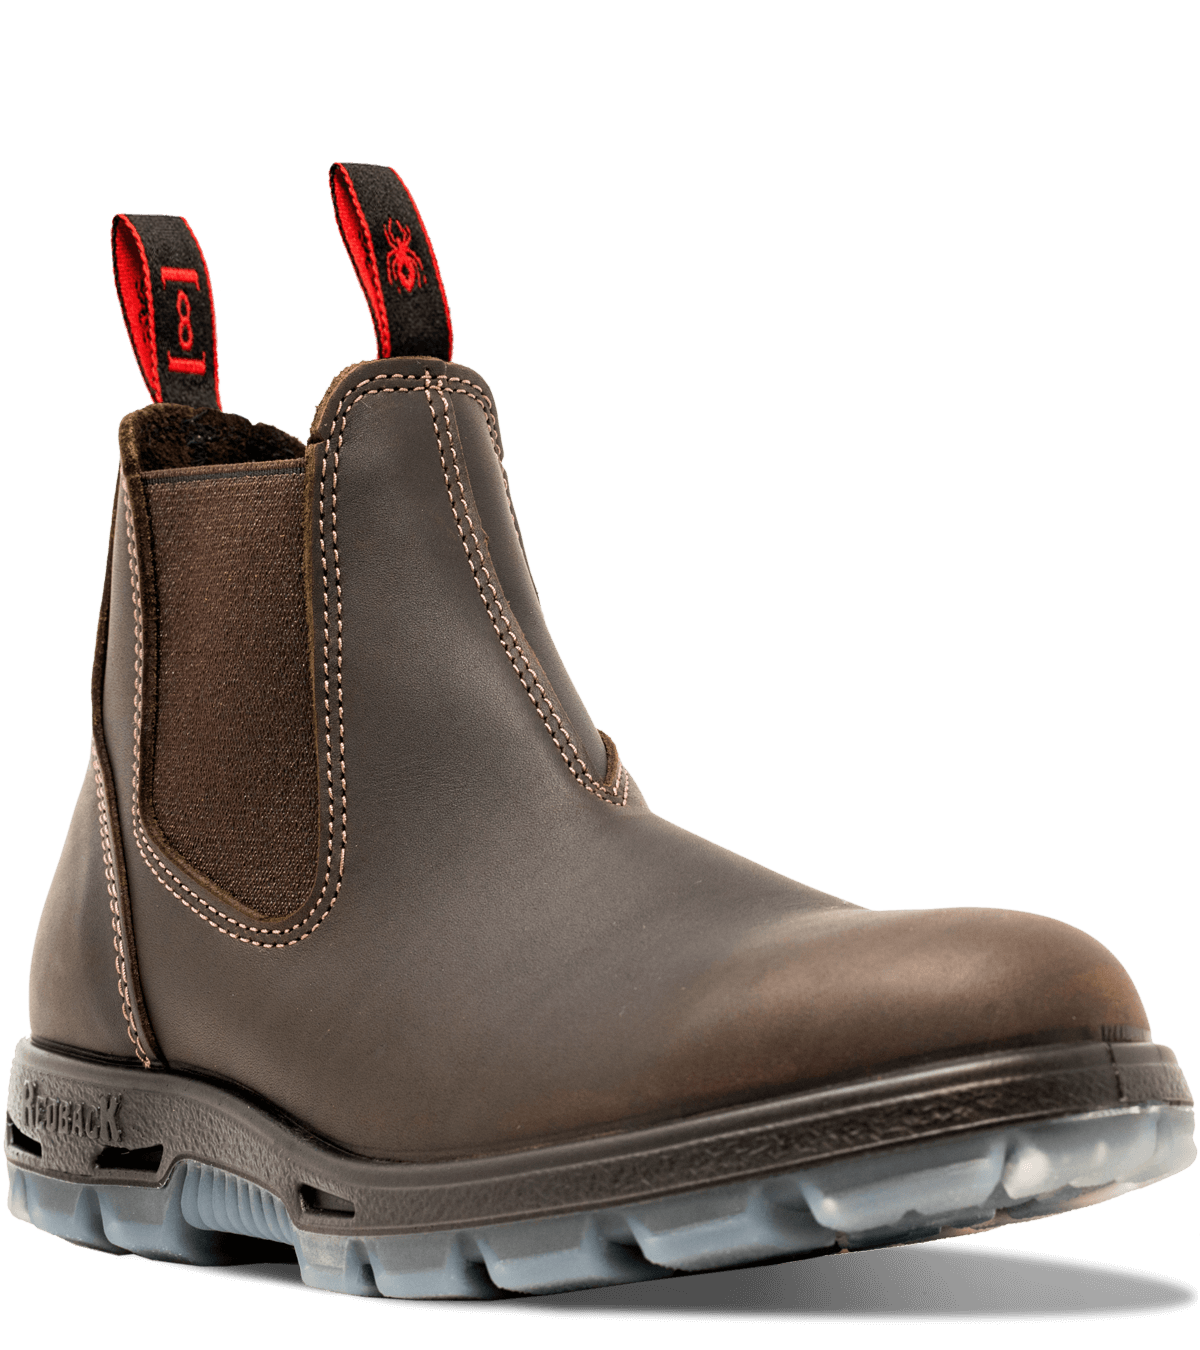 Comfort Is Always In Season So The 6 Redback Great Barrier Slip On Boot Is Built To Give You Just That And More Cra Redback Boots Chelsea Boots Dealer Boots